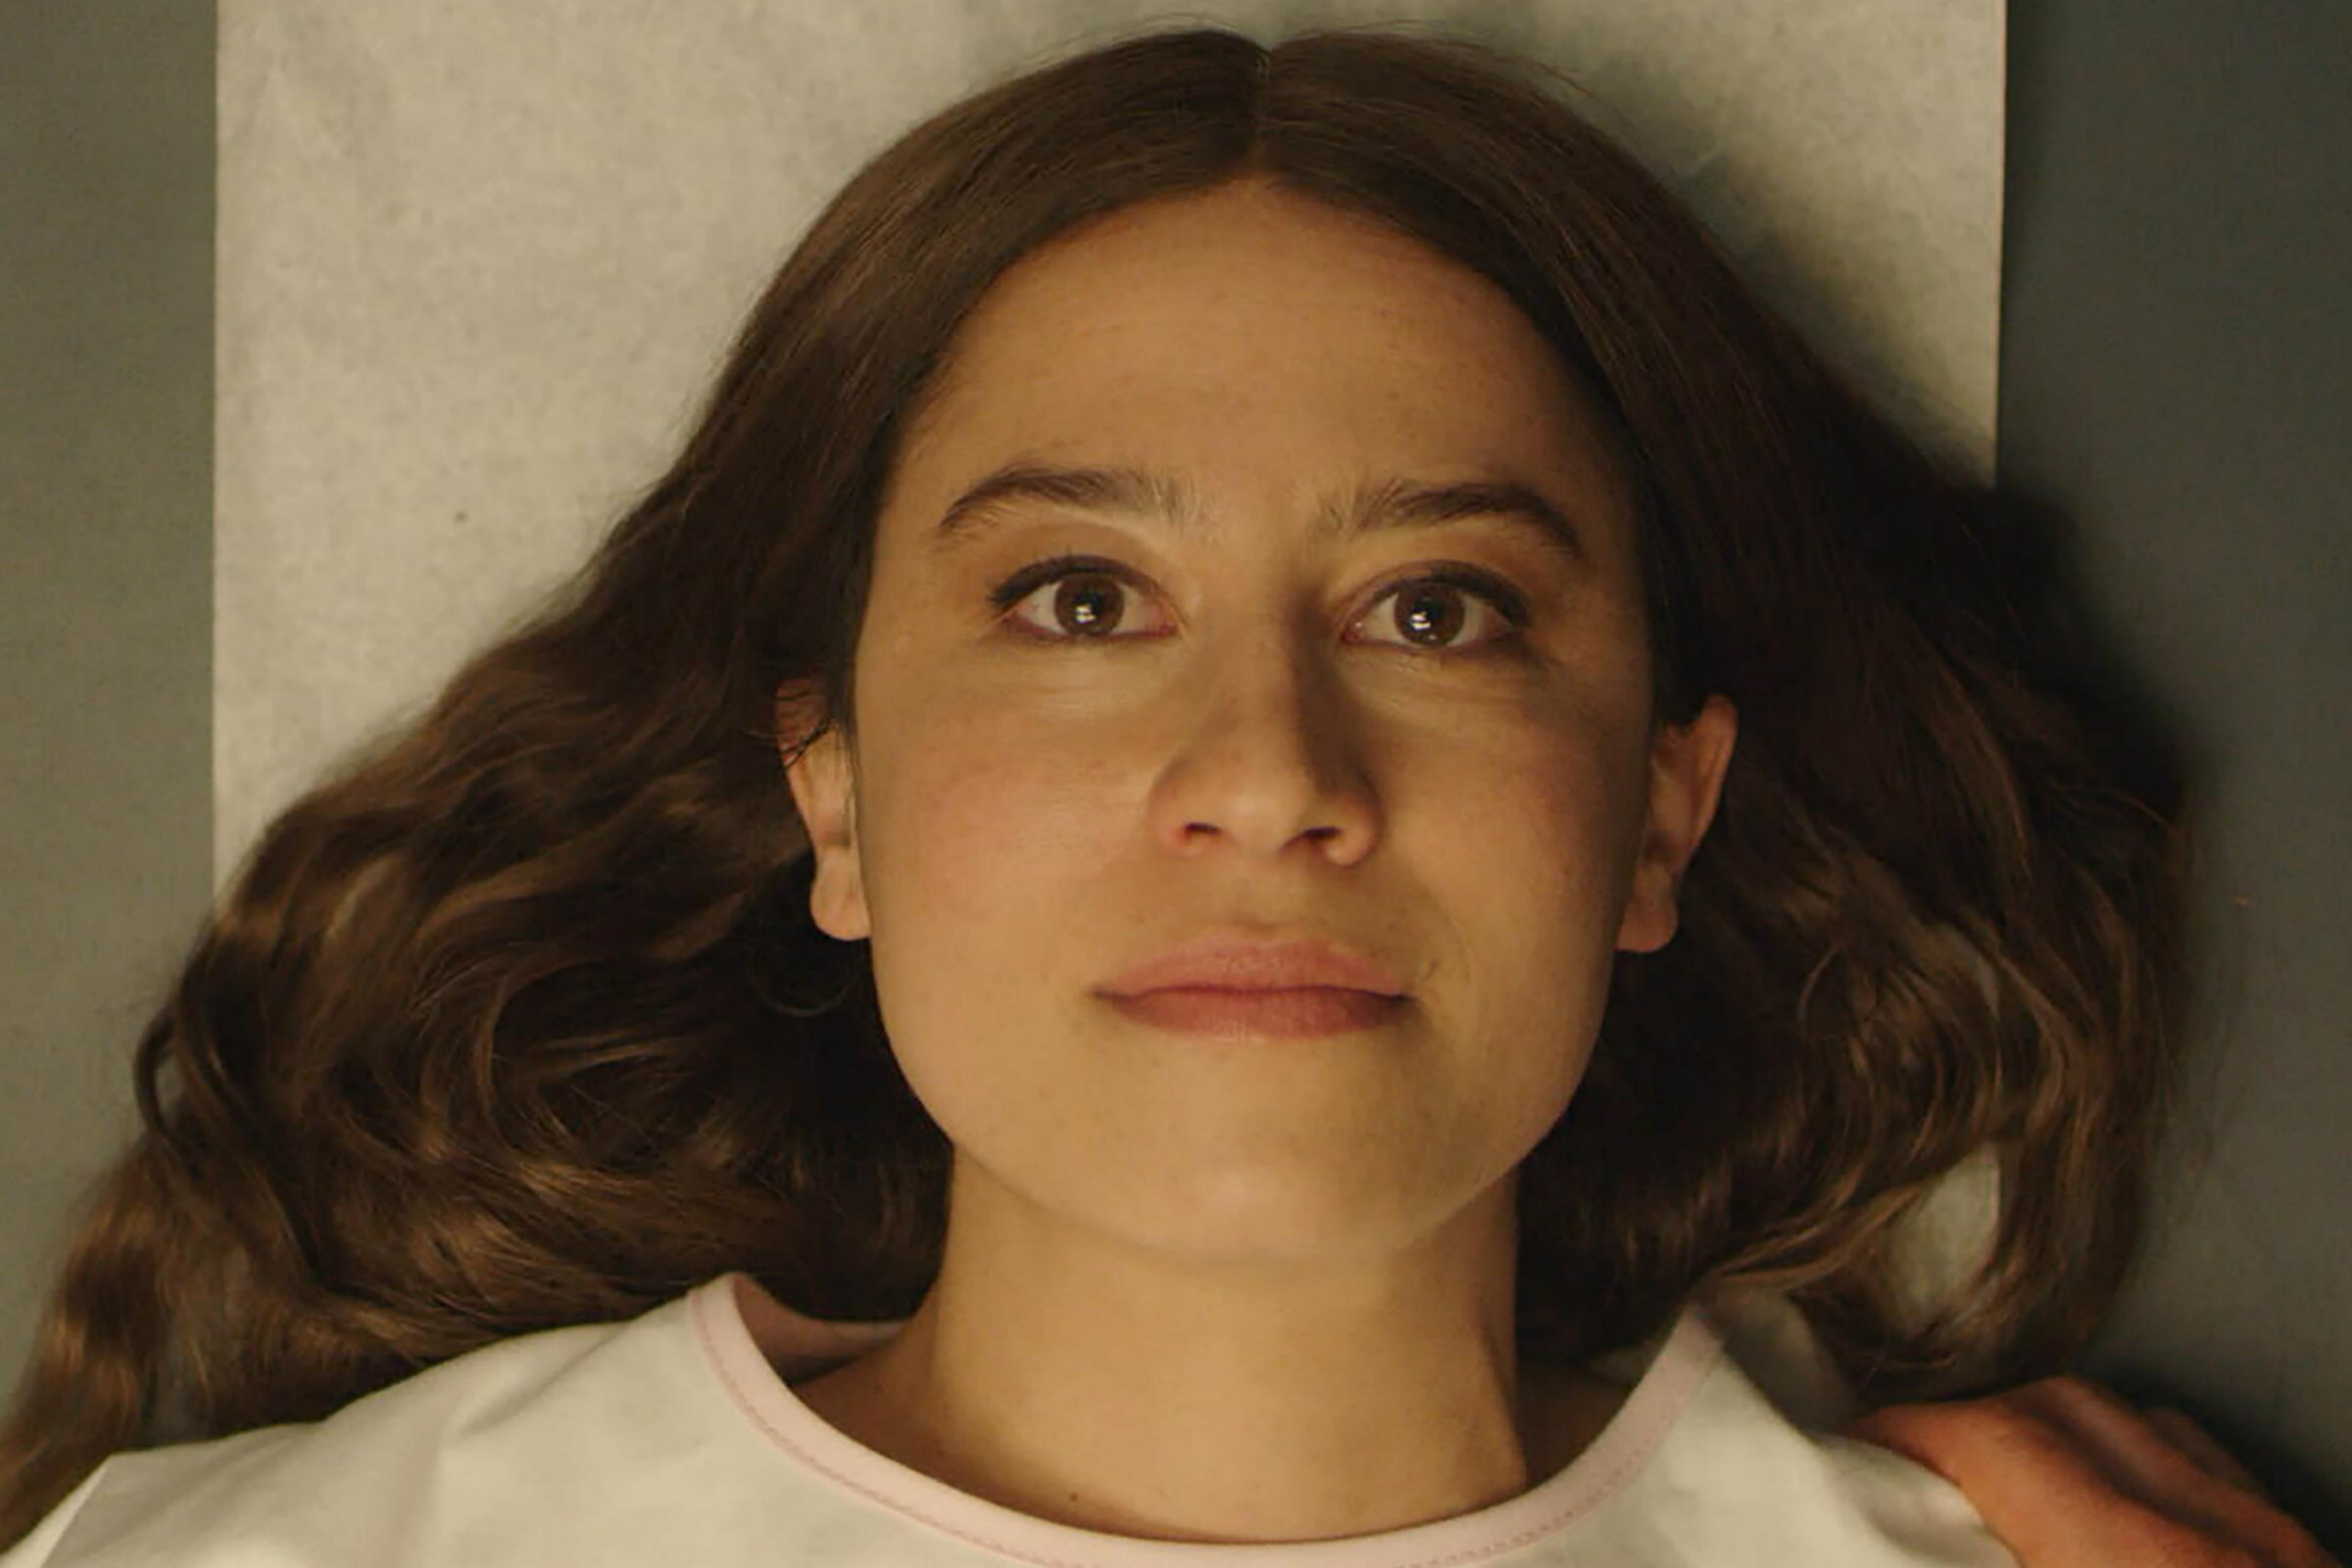 Ilana Glazer plays Rose, a white woman with short brown hair, who is lying on her back in a hospital gown on an exam table